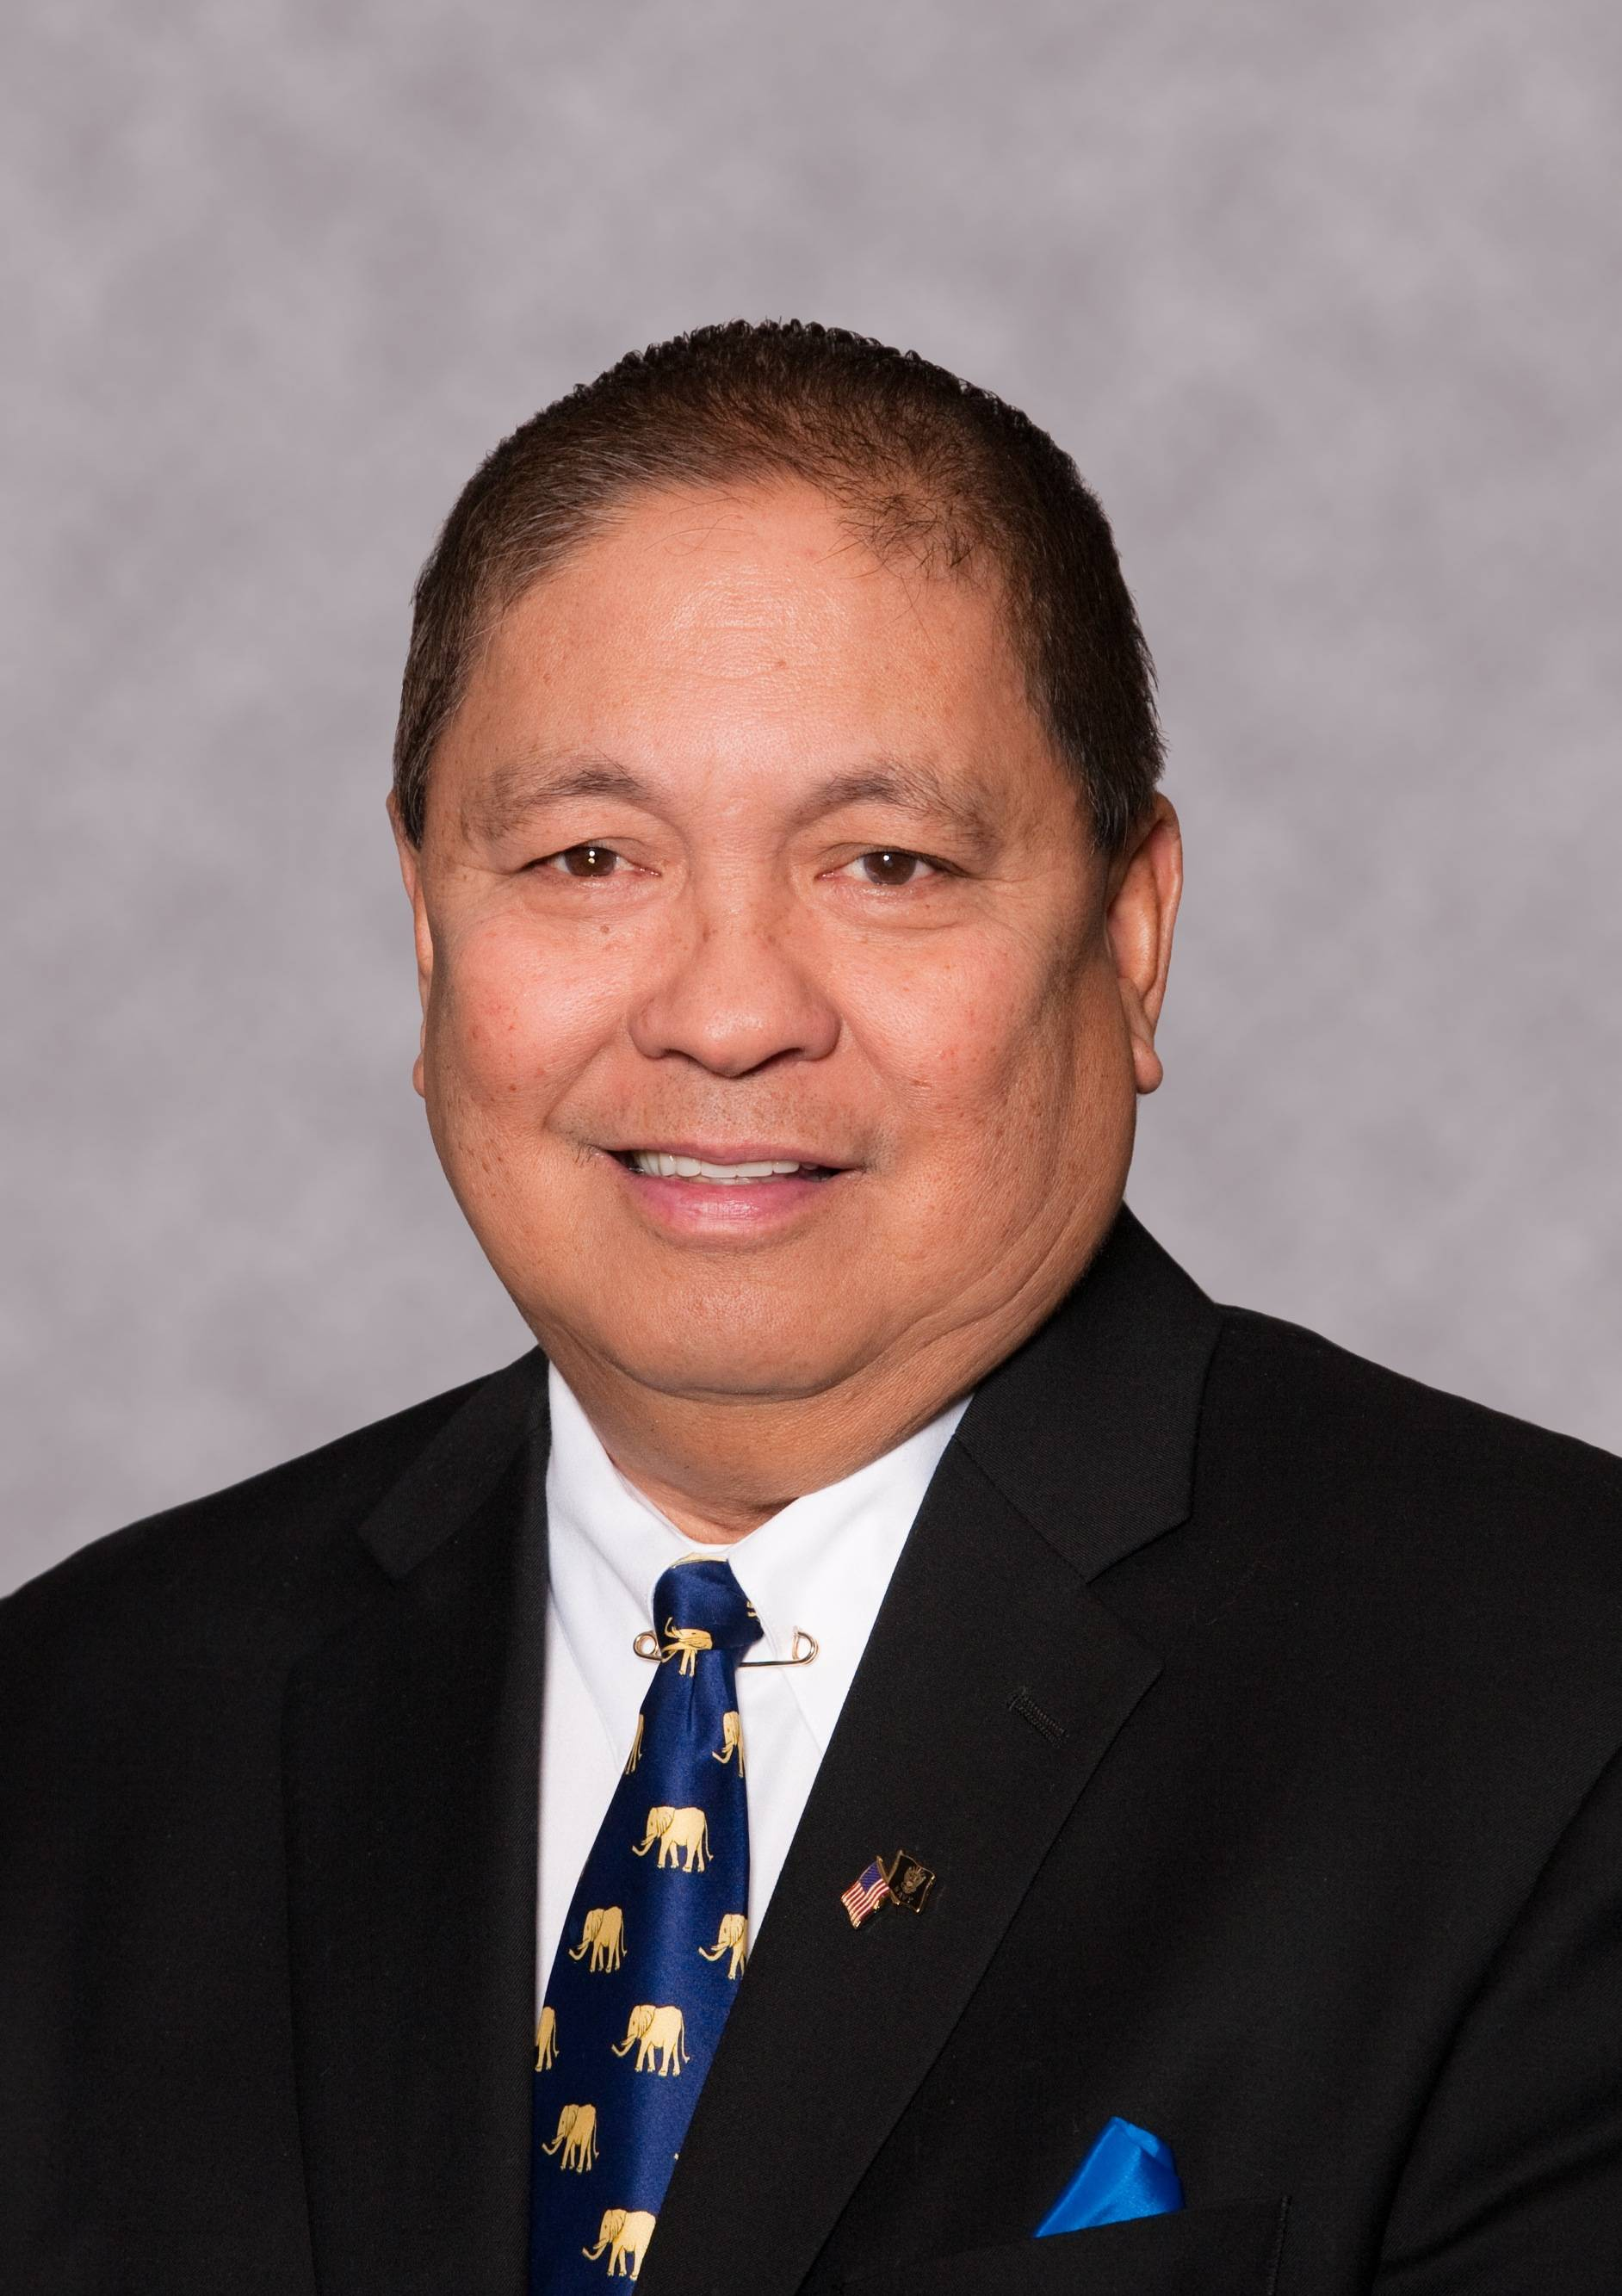 Robert Tolentino, running for Bloomingdale Township Board (4-year Terms)